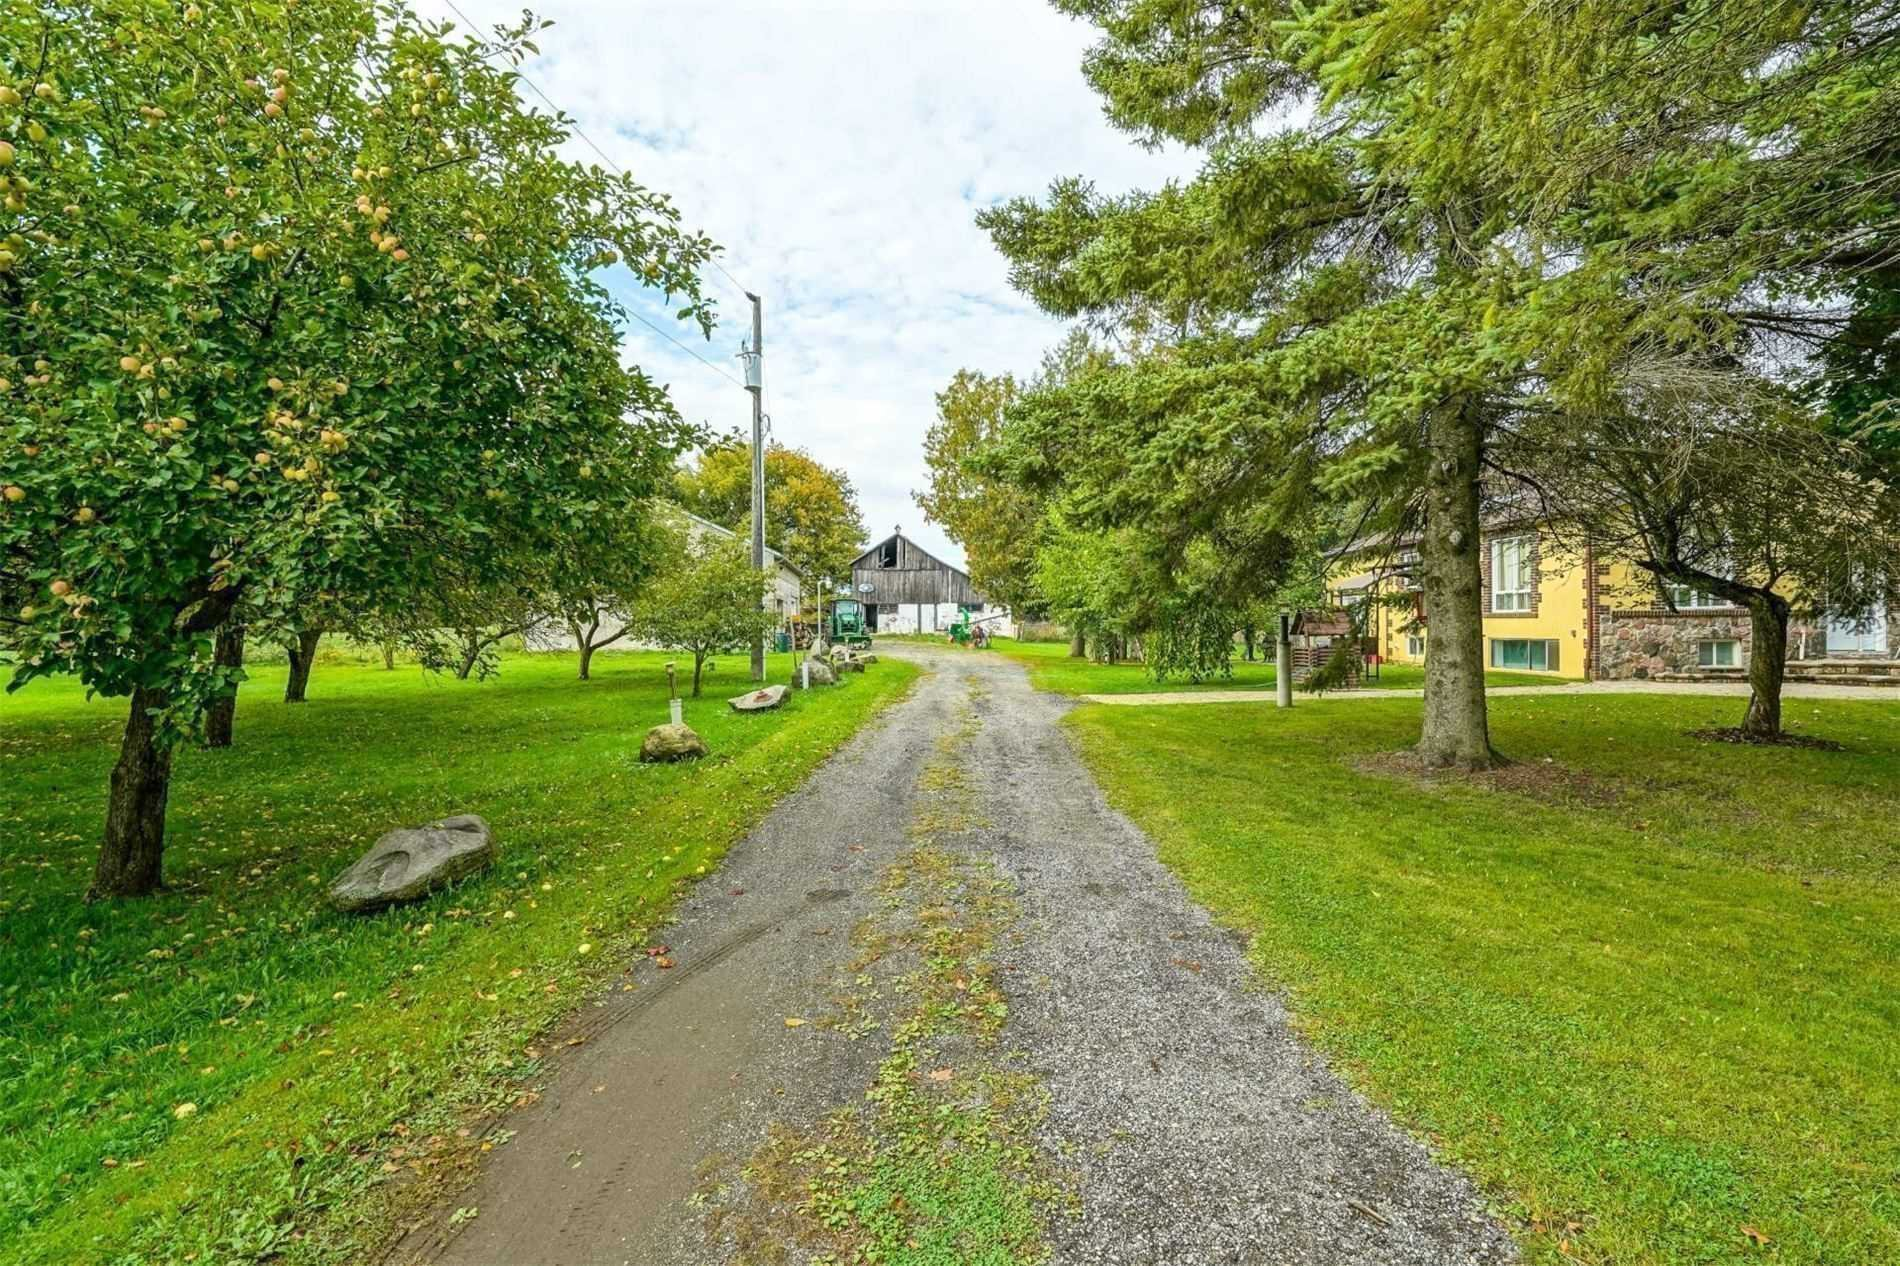 Main Photo: 7190 19th Sdrd in King: Rural King House (Bungalow) for sale : MLS®# N4790223